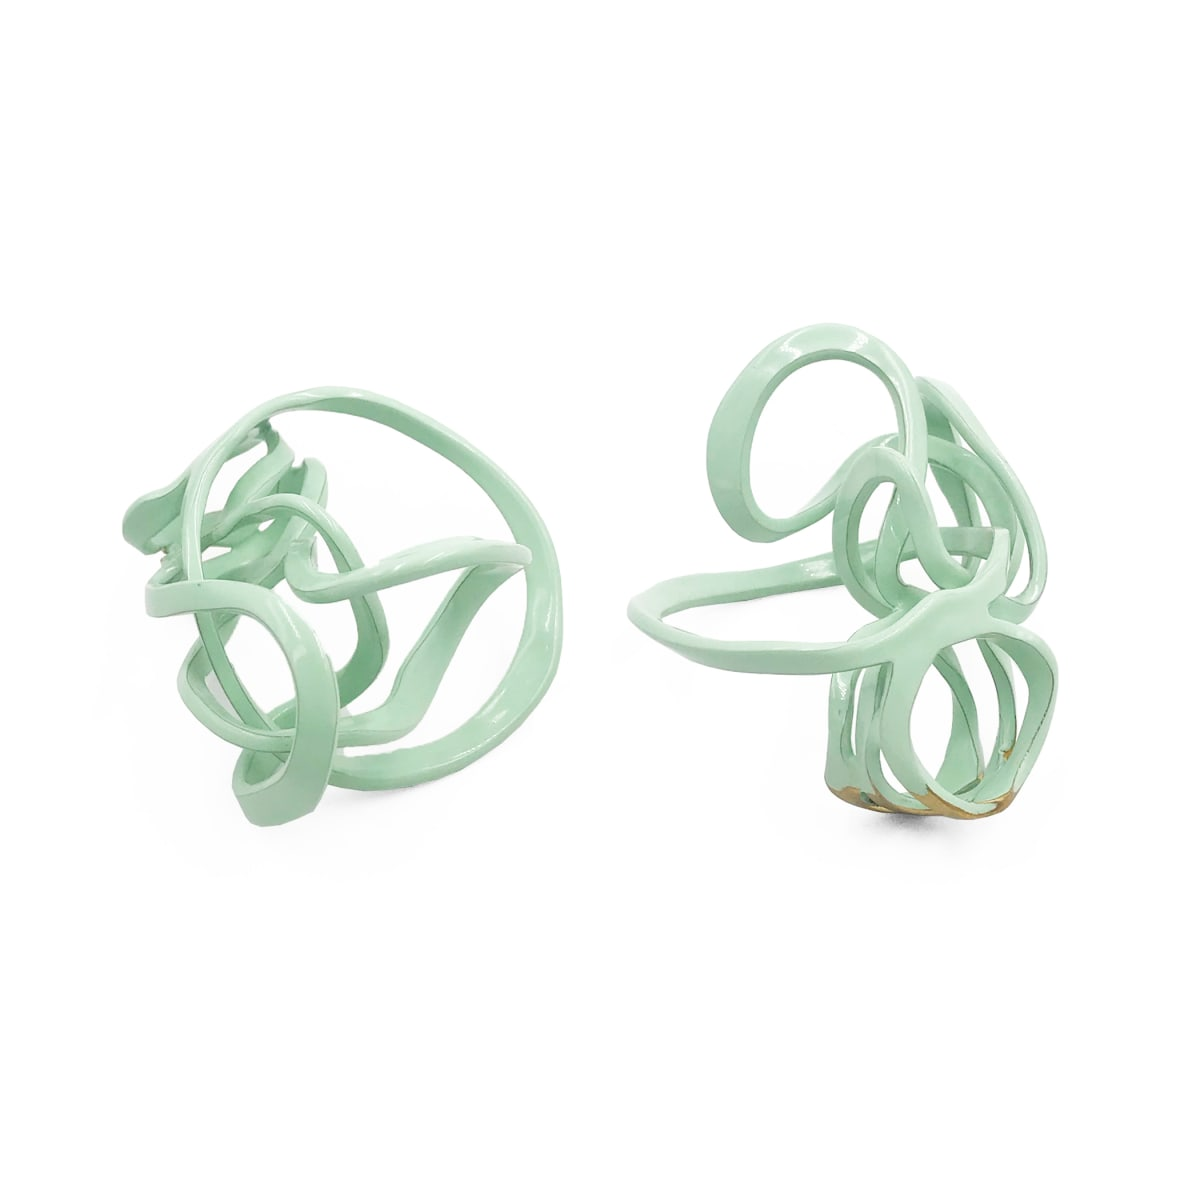 Laura Wood, Open Weave Triple Ring Mint